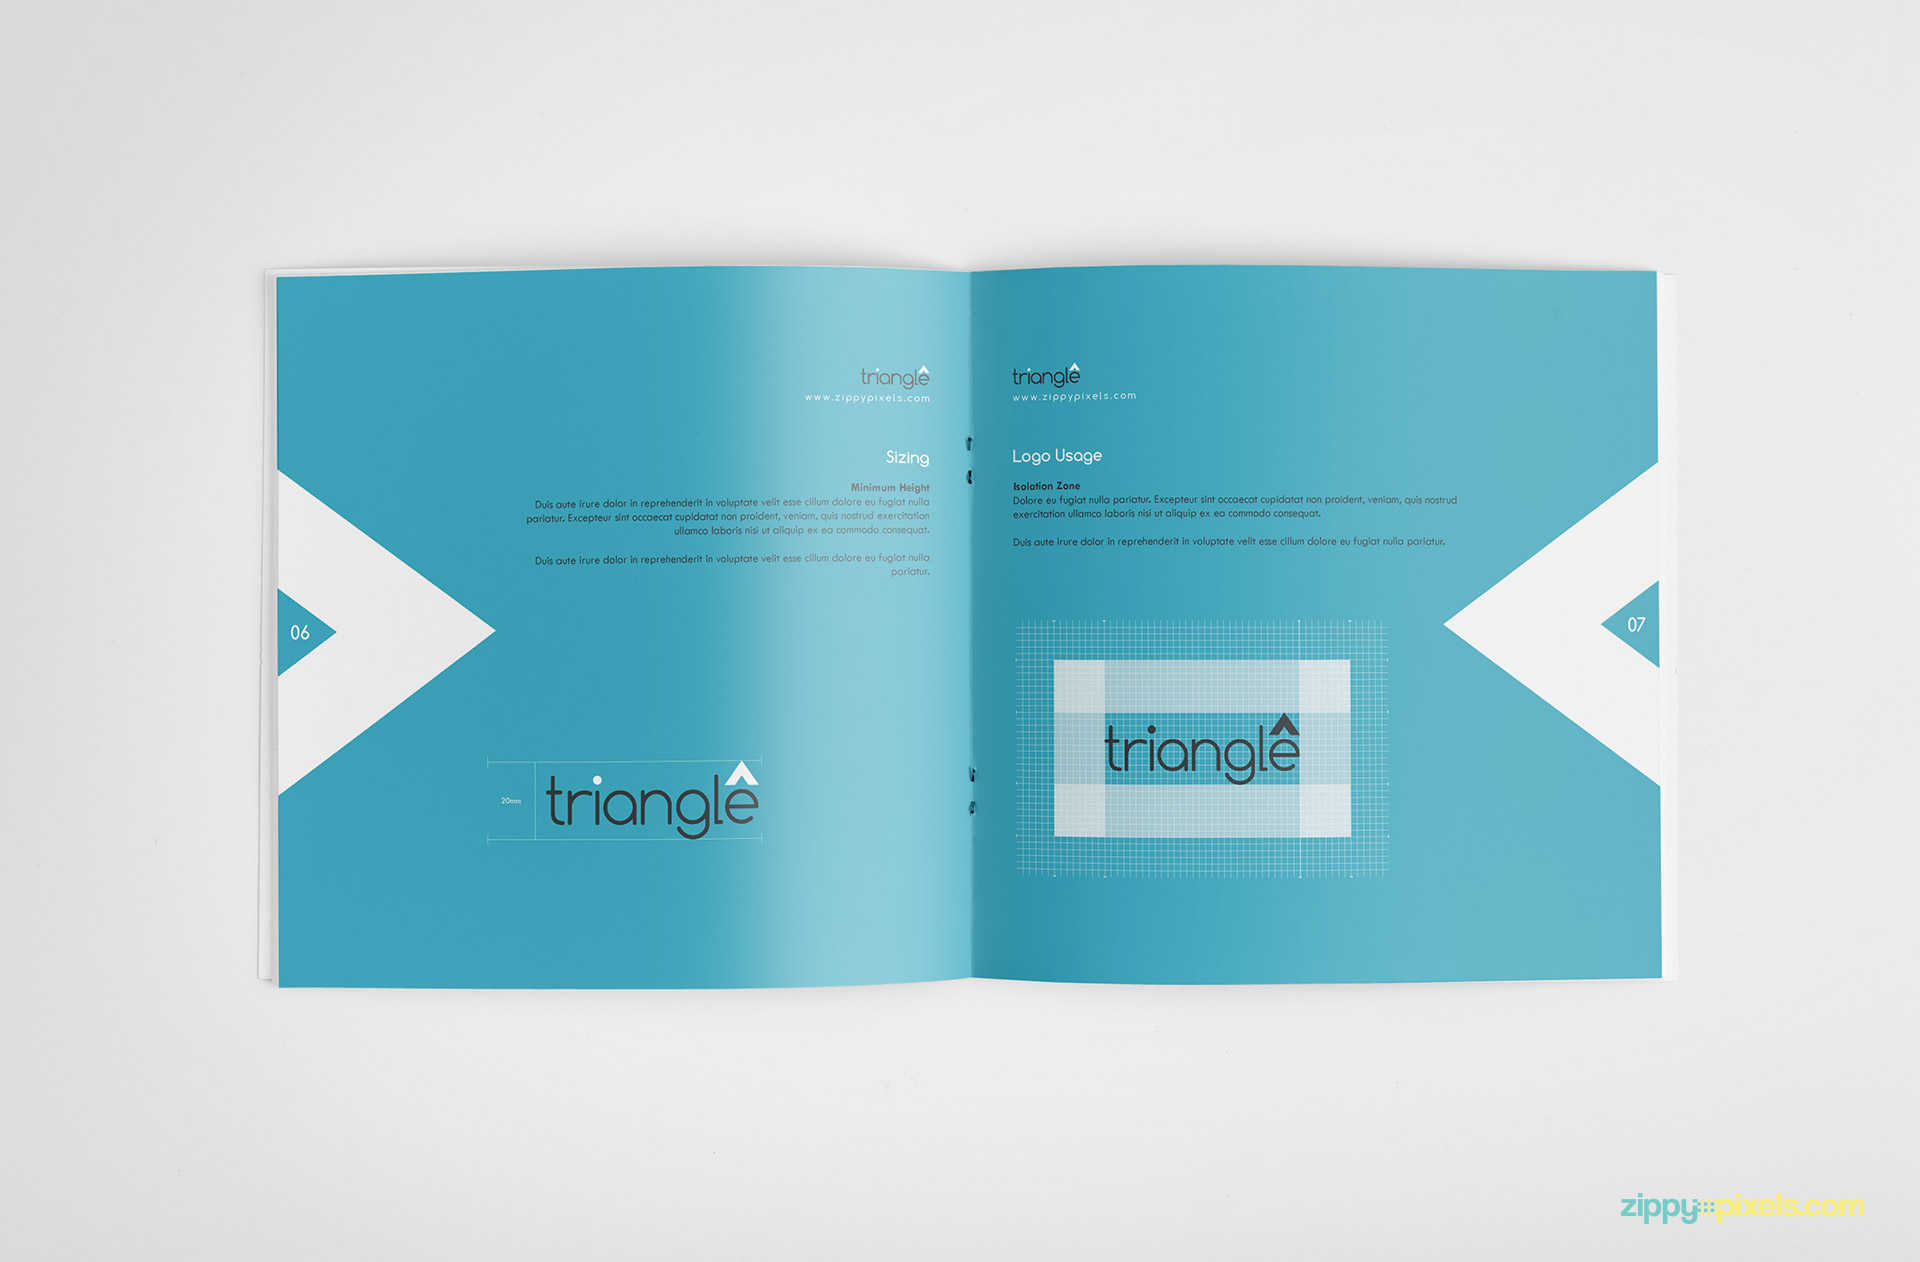 06-brand-book-11-sizing-logo-usage